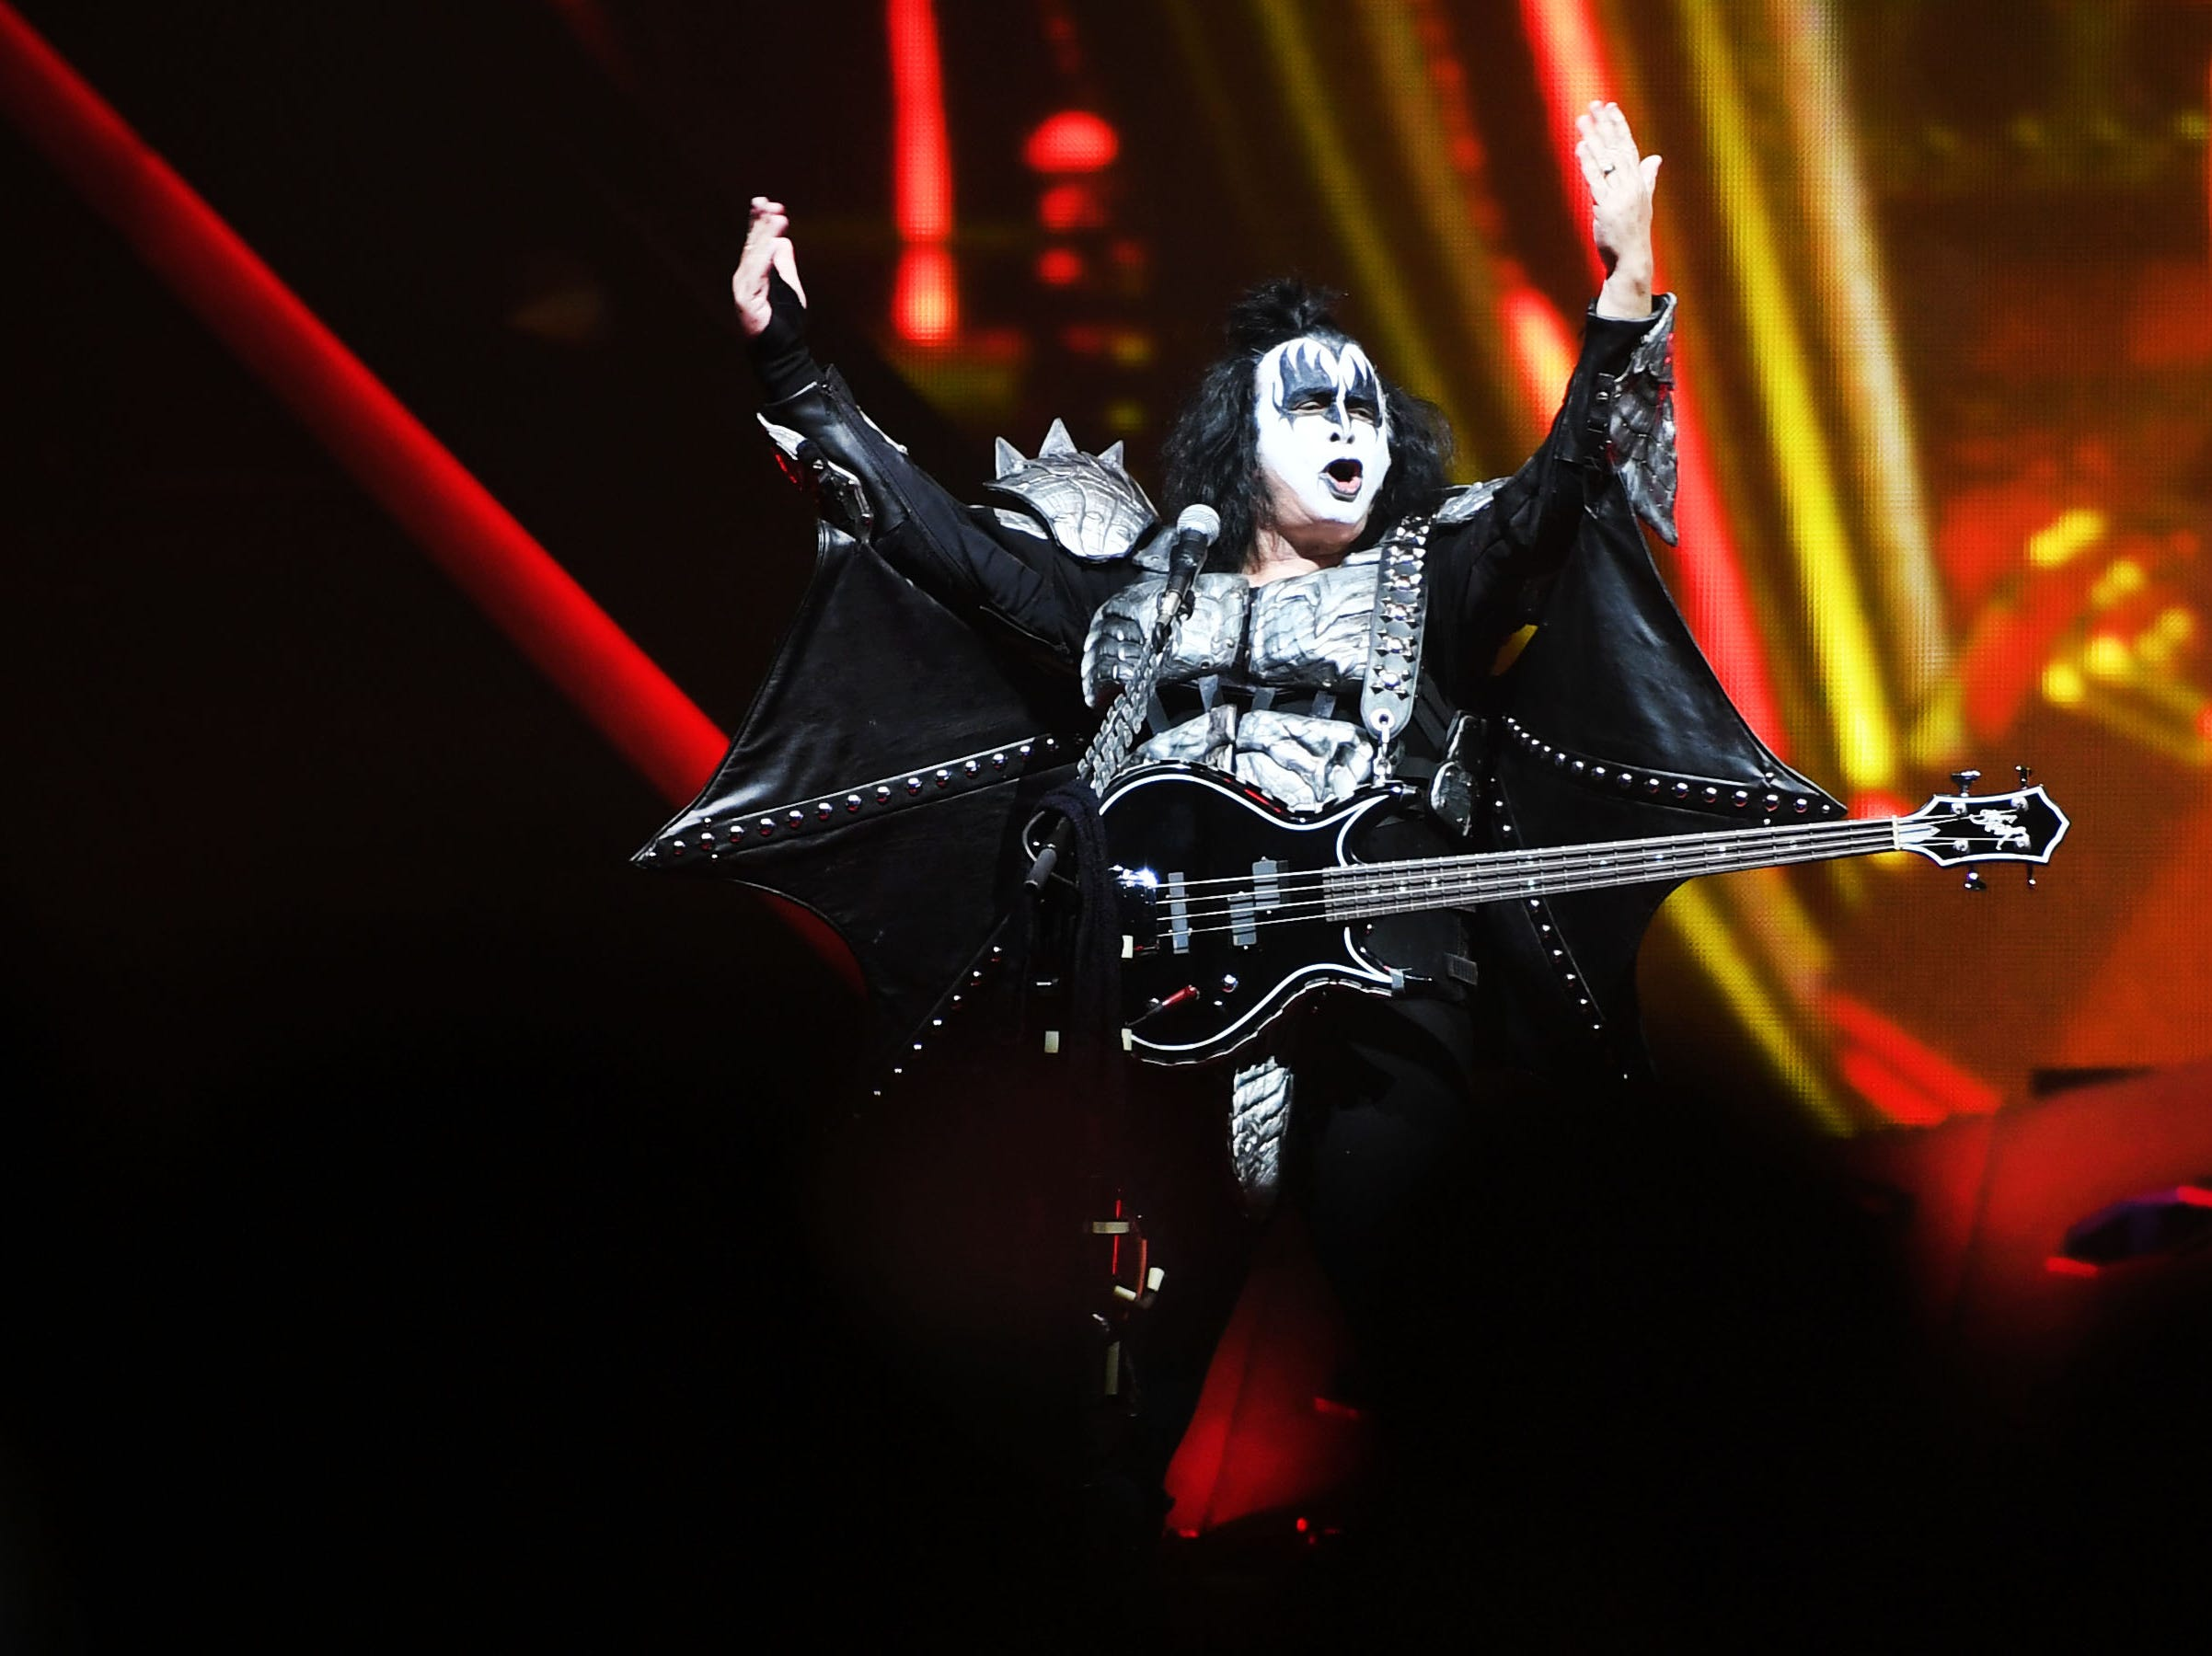 KISS bassist Gene Simmons performs during the KISS End of the Road World Tour Wednesday, March 6, at the Denny Sanford Premier Center in Sioux Falls. The line up included lead vocalist Paul Stanley, bassist Gene Simmons, guitarist Tommy Thayer and drummer Eric Singer.